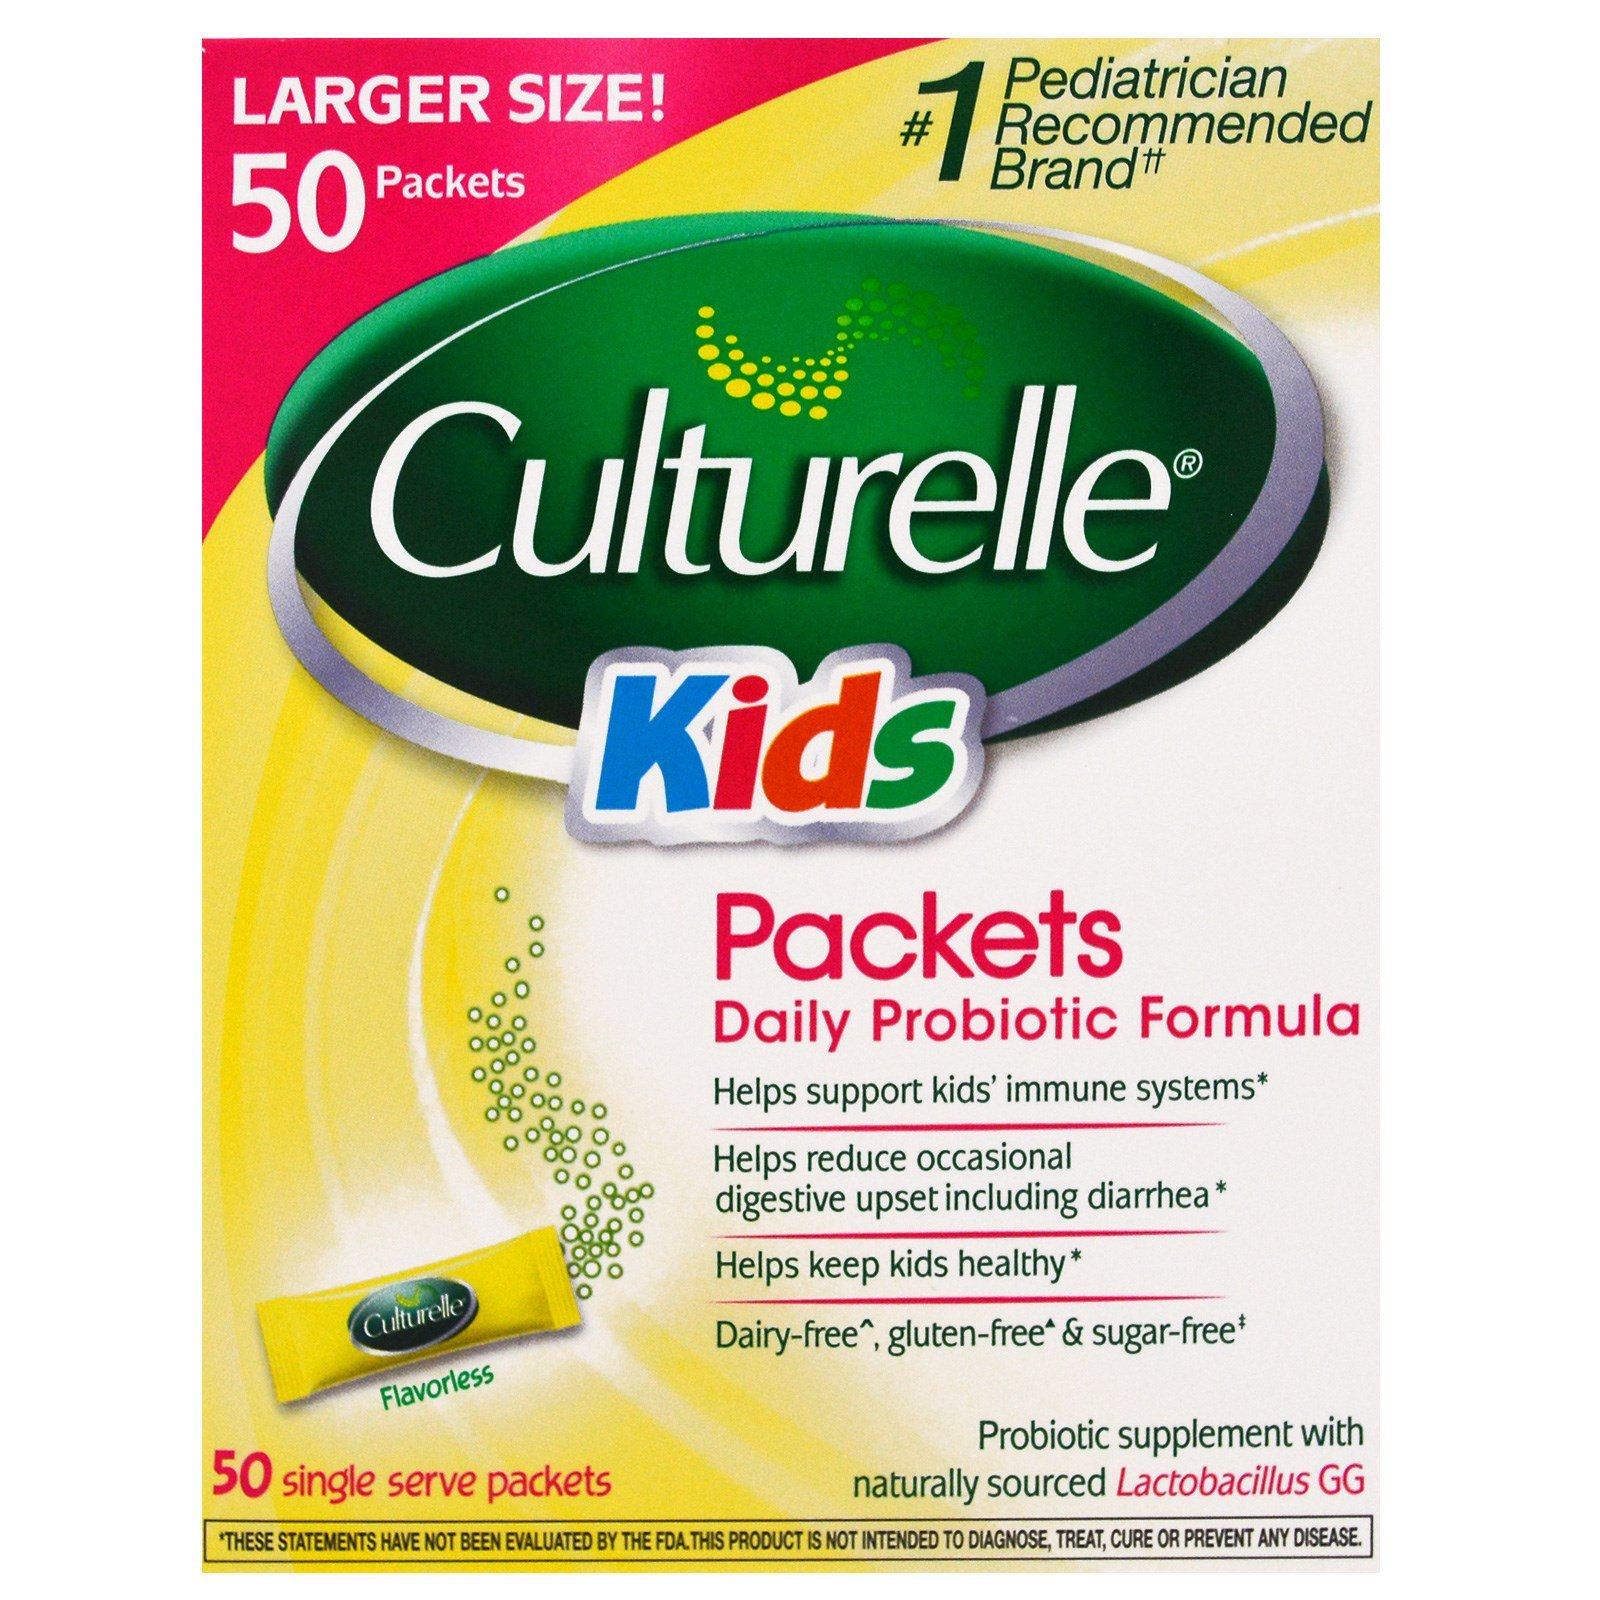 Culturelle Baby Calm+Comfort probiotic, from the #1 Pediatrician recommended brand, helps you soothe your baby.* We know how helpless you can feel when you dont know why your babys crying. One reason your little one may be upset is due to an imbalance of good and non-beneficial bacteria causing occasional digestive upset, fussiness, and crying/5().